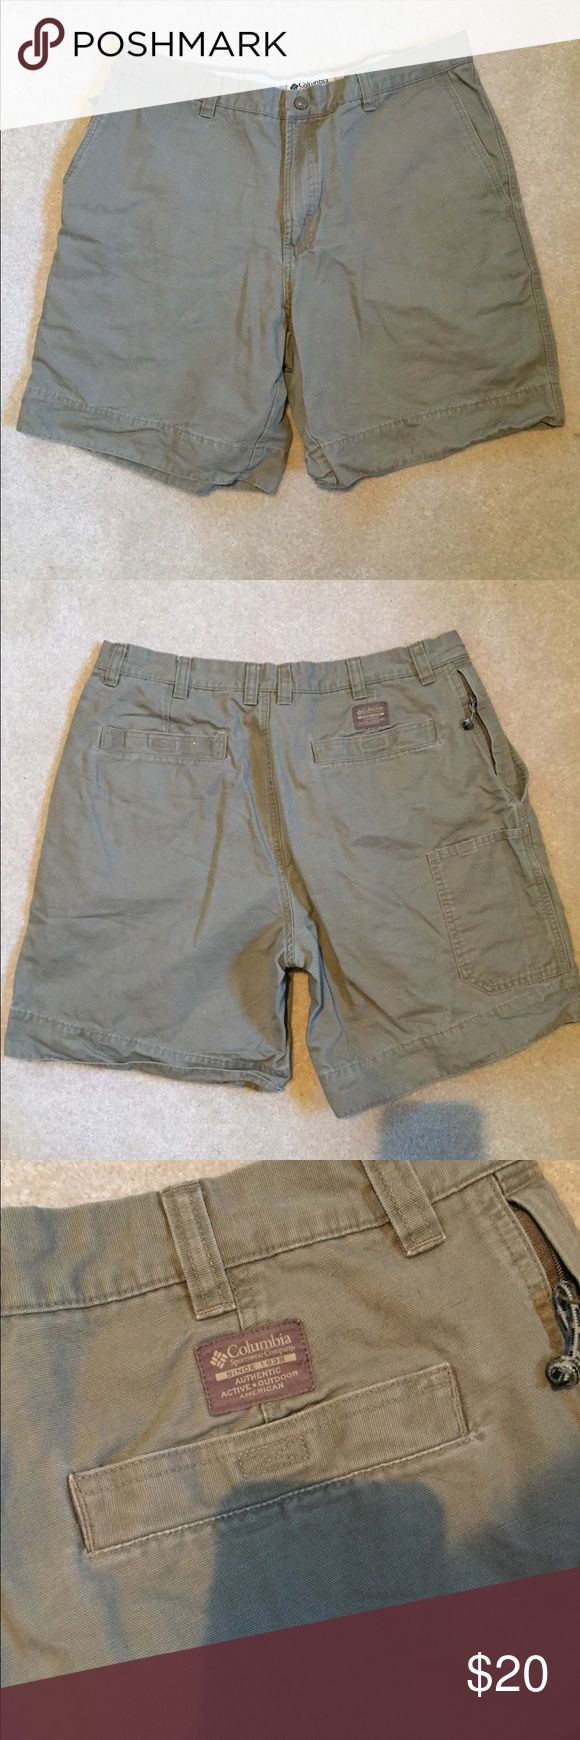 New! Columbia Sportswear shorts! New Columbia Sportswear shorts! Laundered but never worn. Purchased for my husband but they were too small. Dark Khaki color. Columbia Shorts